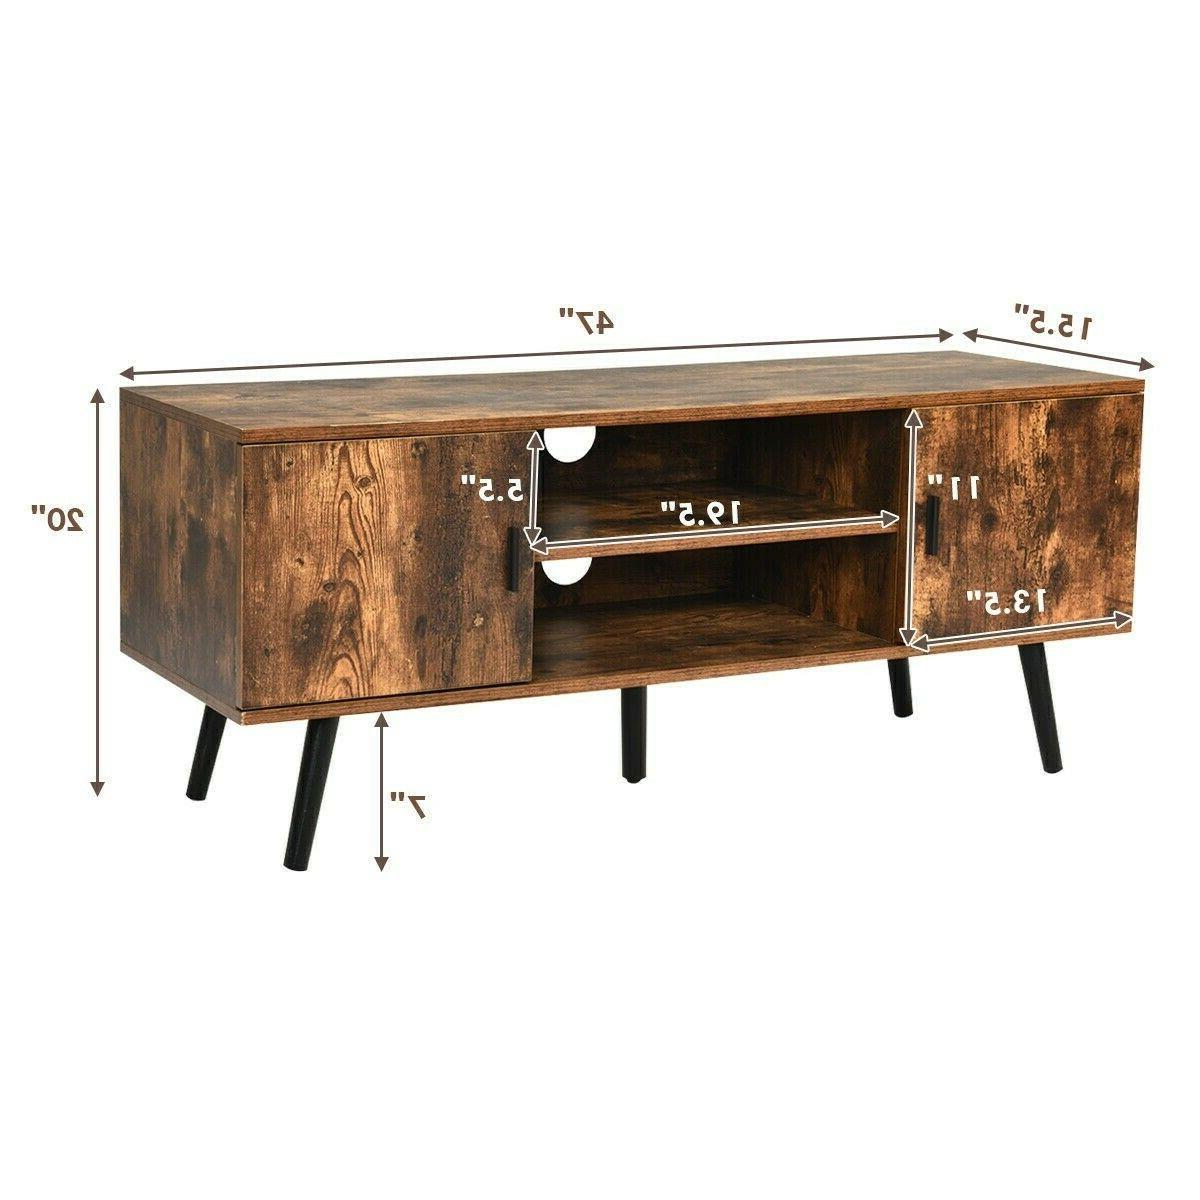 Wood TV Stand Unit Cabinet Living Room Console Table Shelves